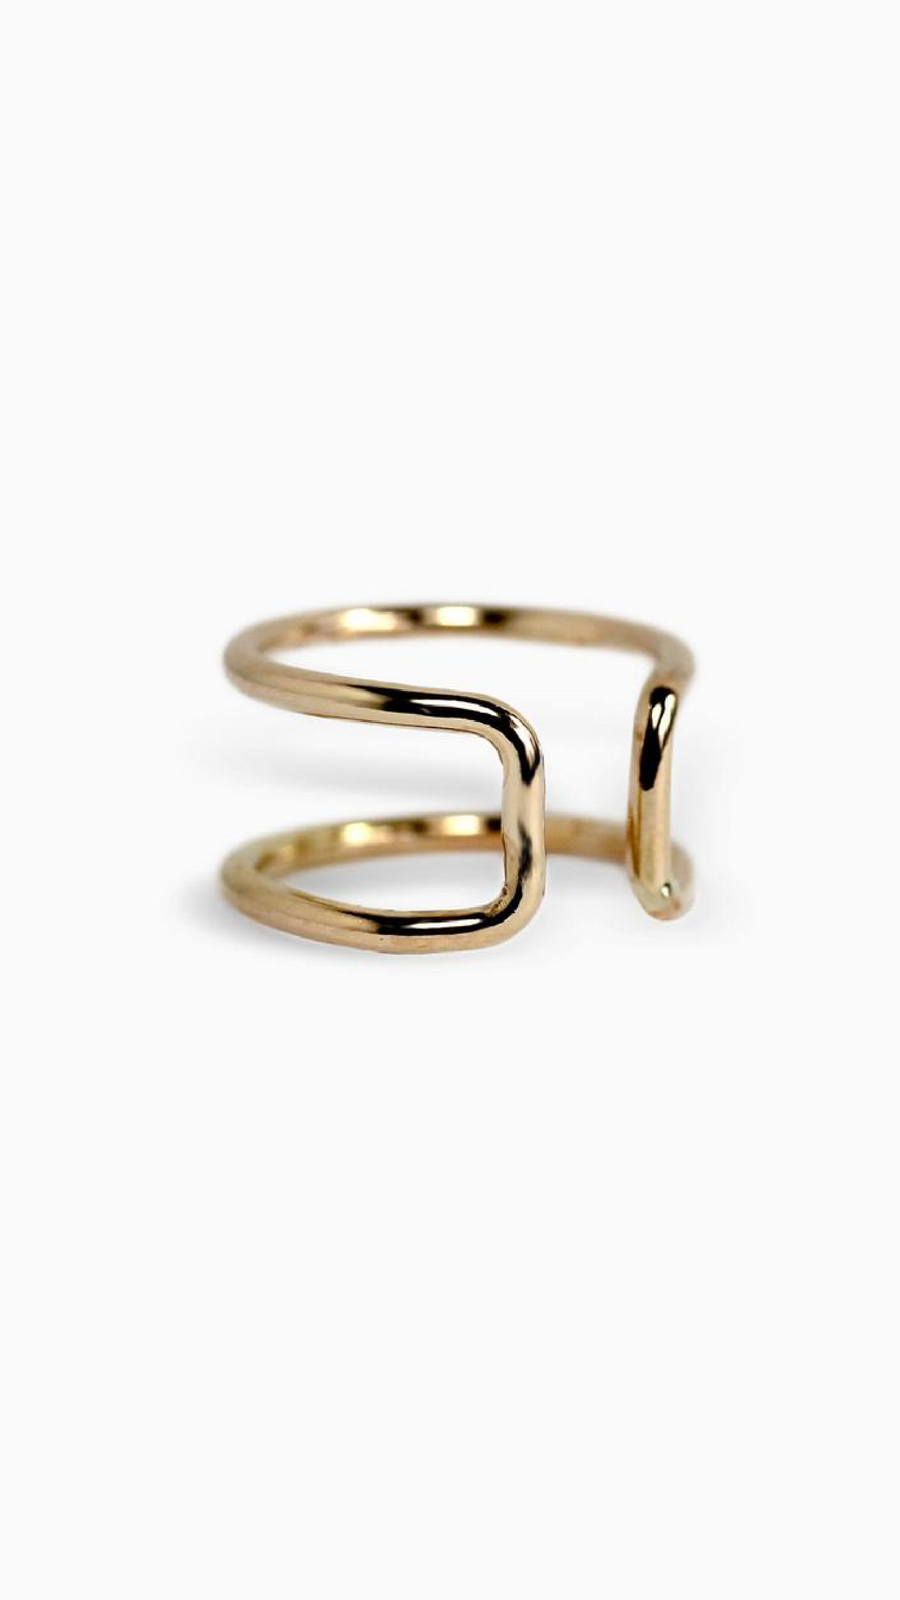 Sloane Jewelry Design Minimalist Ear Cuff